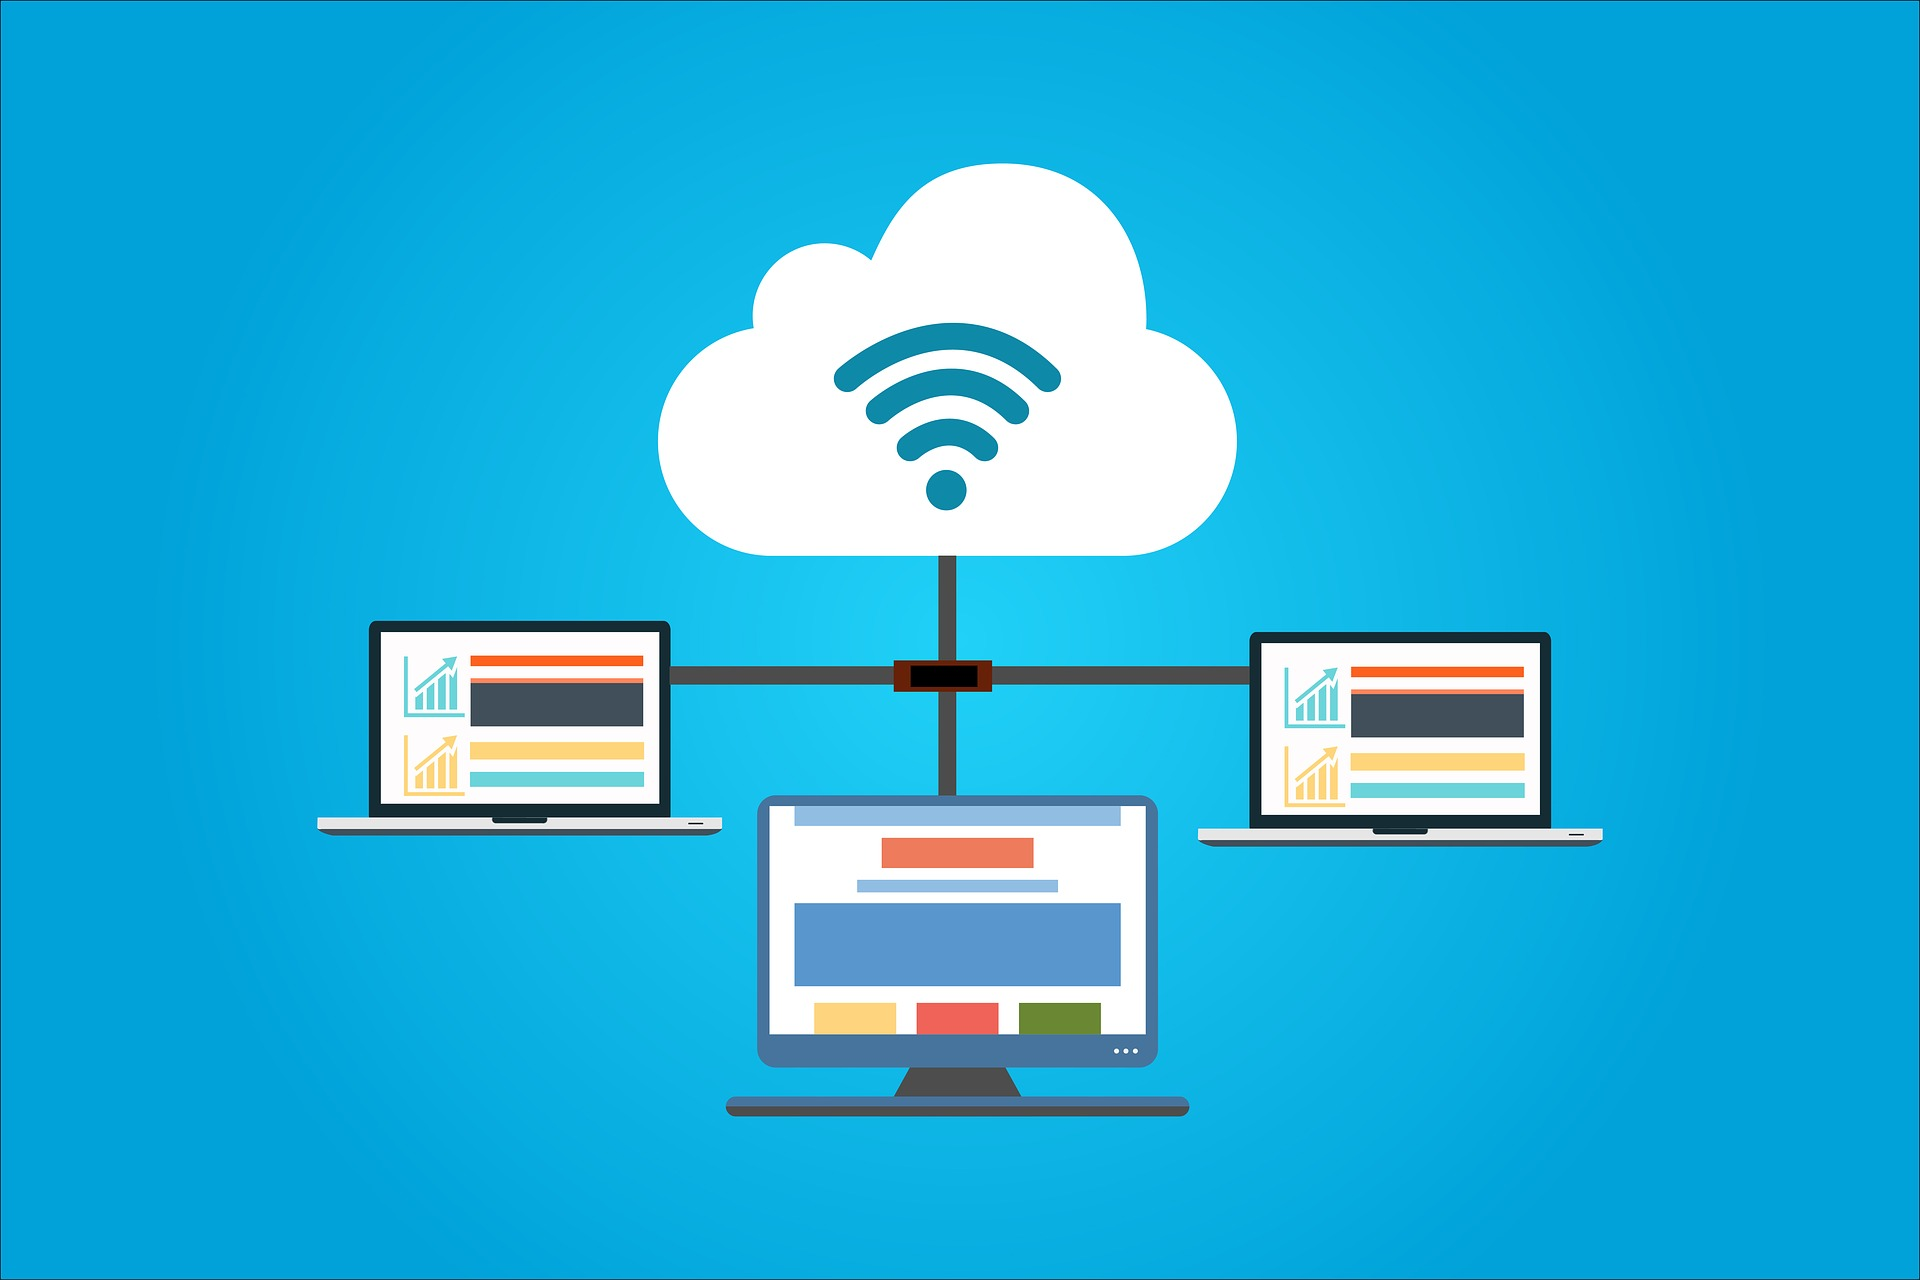 Increasing Hotel Security with Cloud-Based Solutions